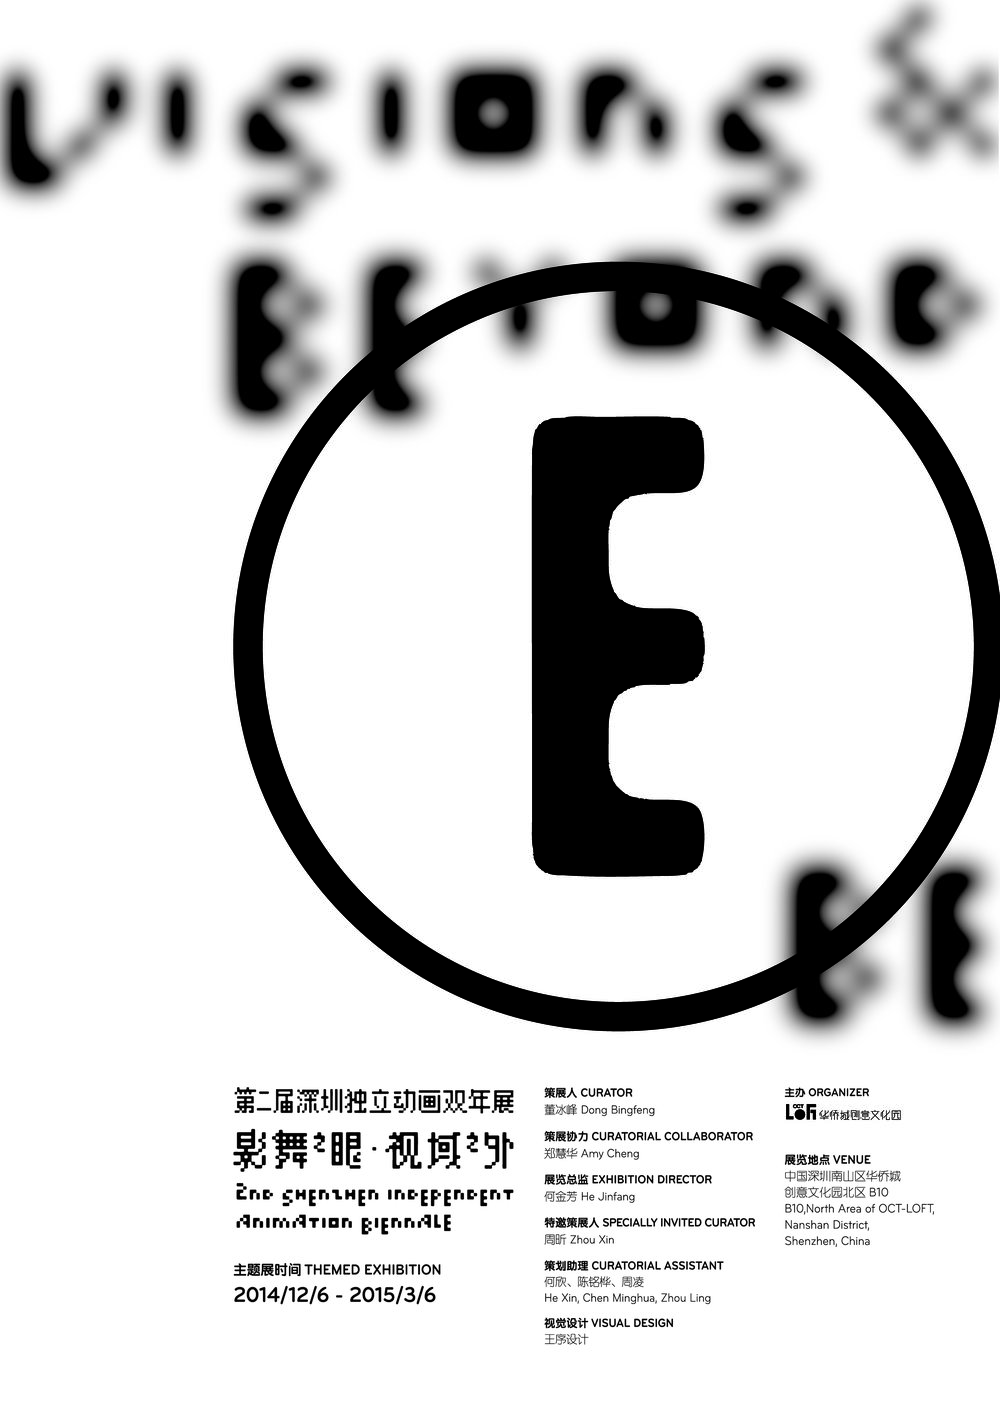 第二届深圳独立动画双年展 Second Shenzhen Independent Animation Biennial  -